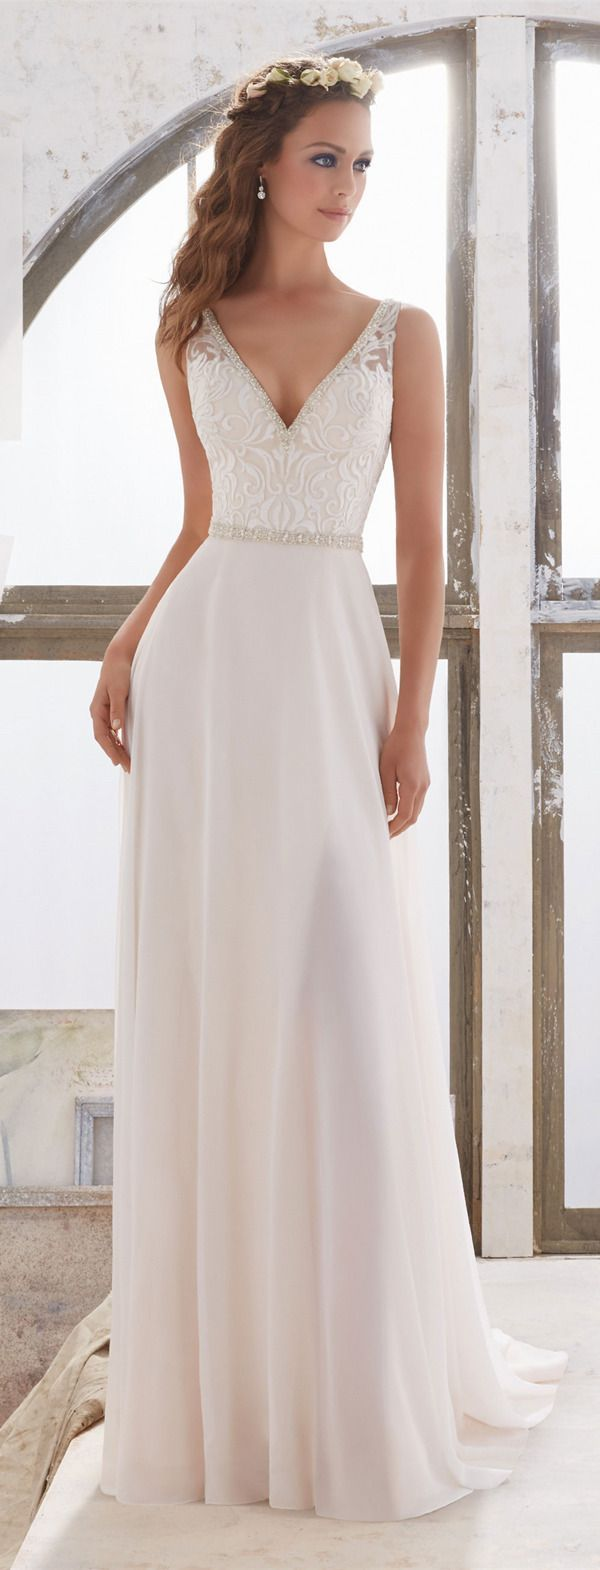 Simple Backyard Wedding Dresses Dresses For Guest At Wedding Check More At Http Svesty Com Simple Back Wedding Dresses Elegant Wedding Dress Bridal Dresses [ 1570 x 600 Pixel ]